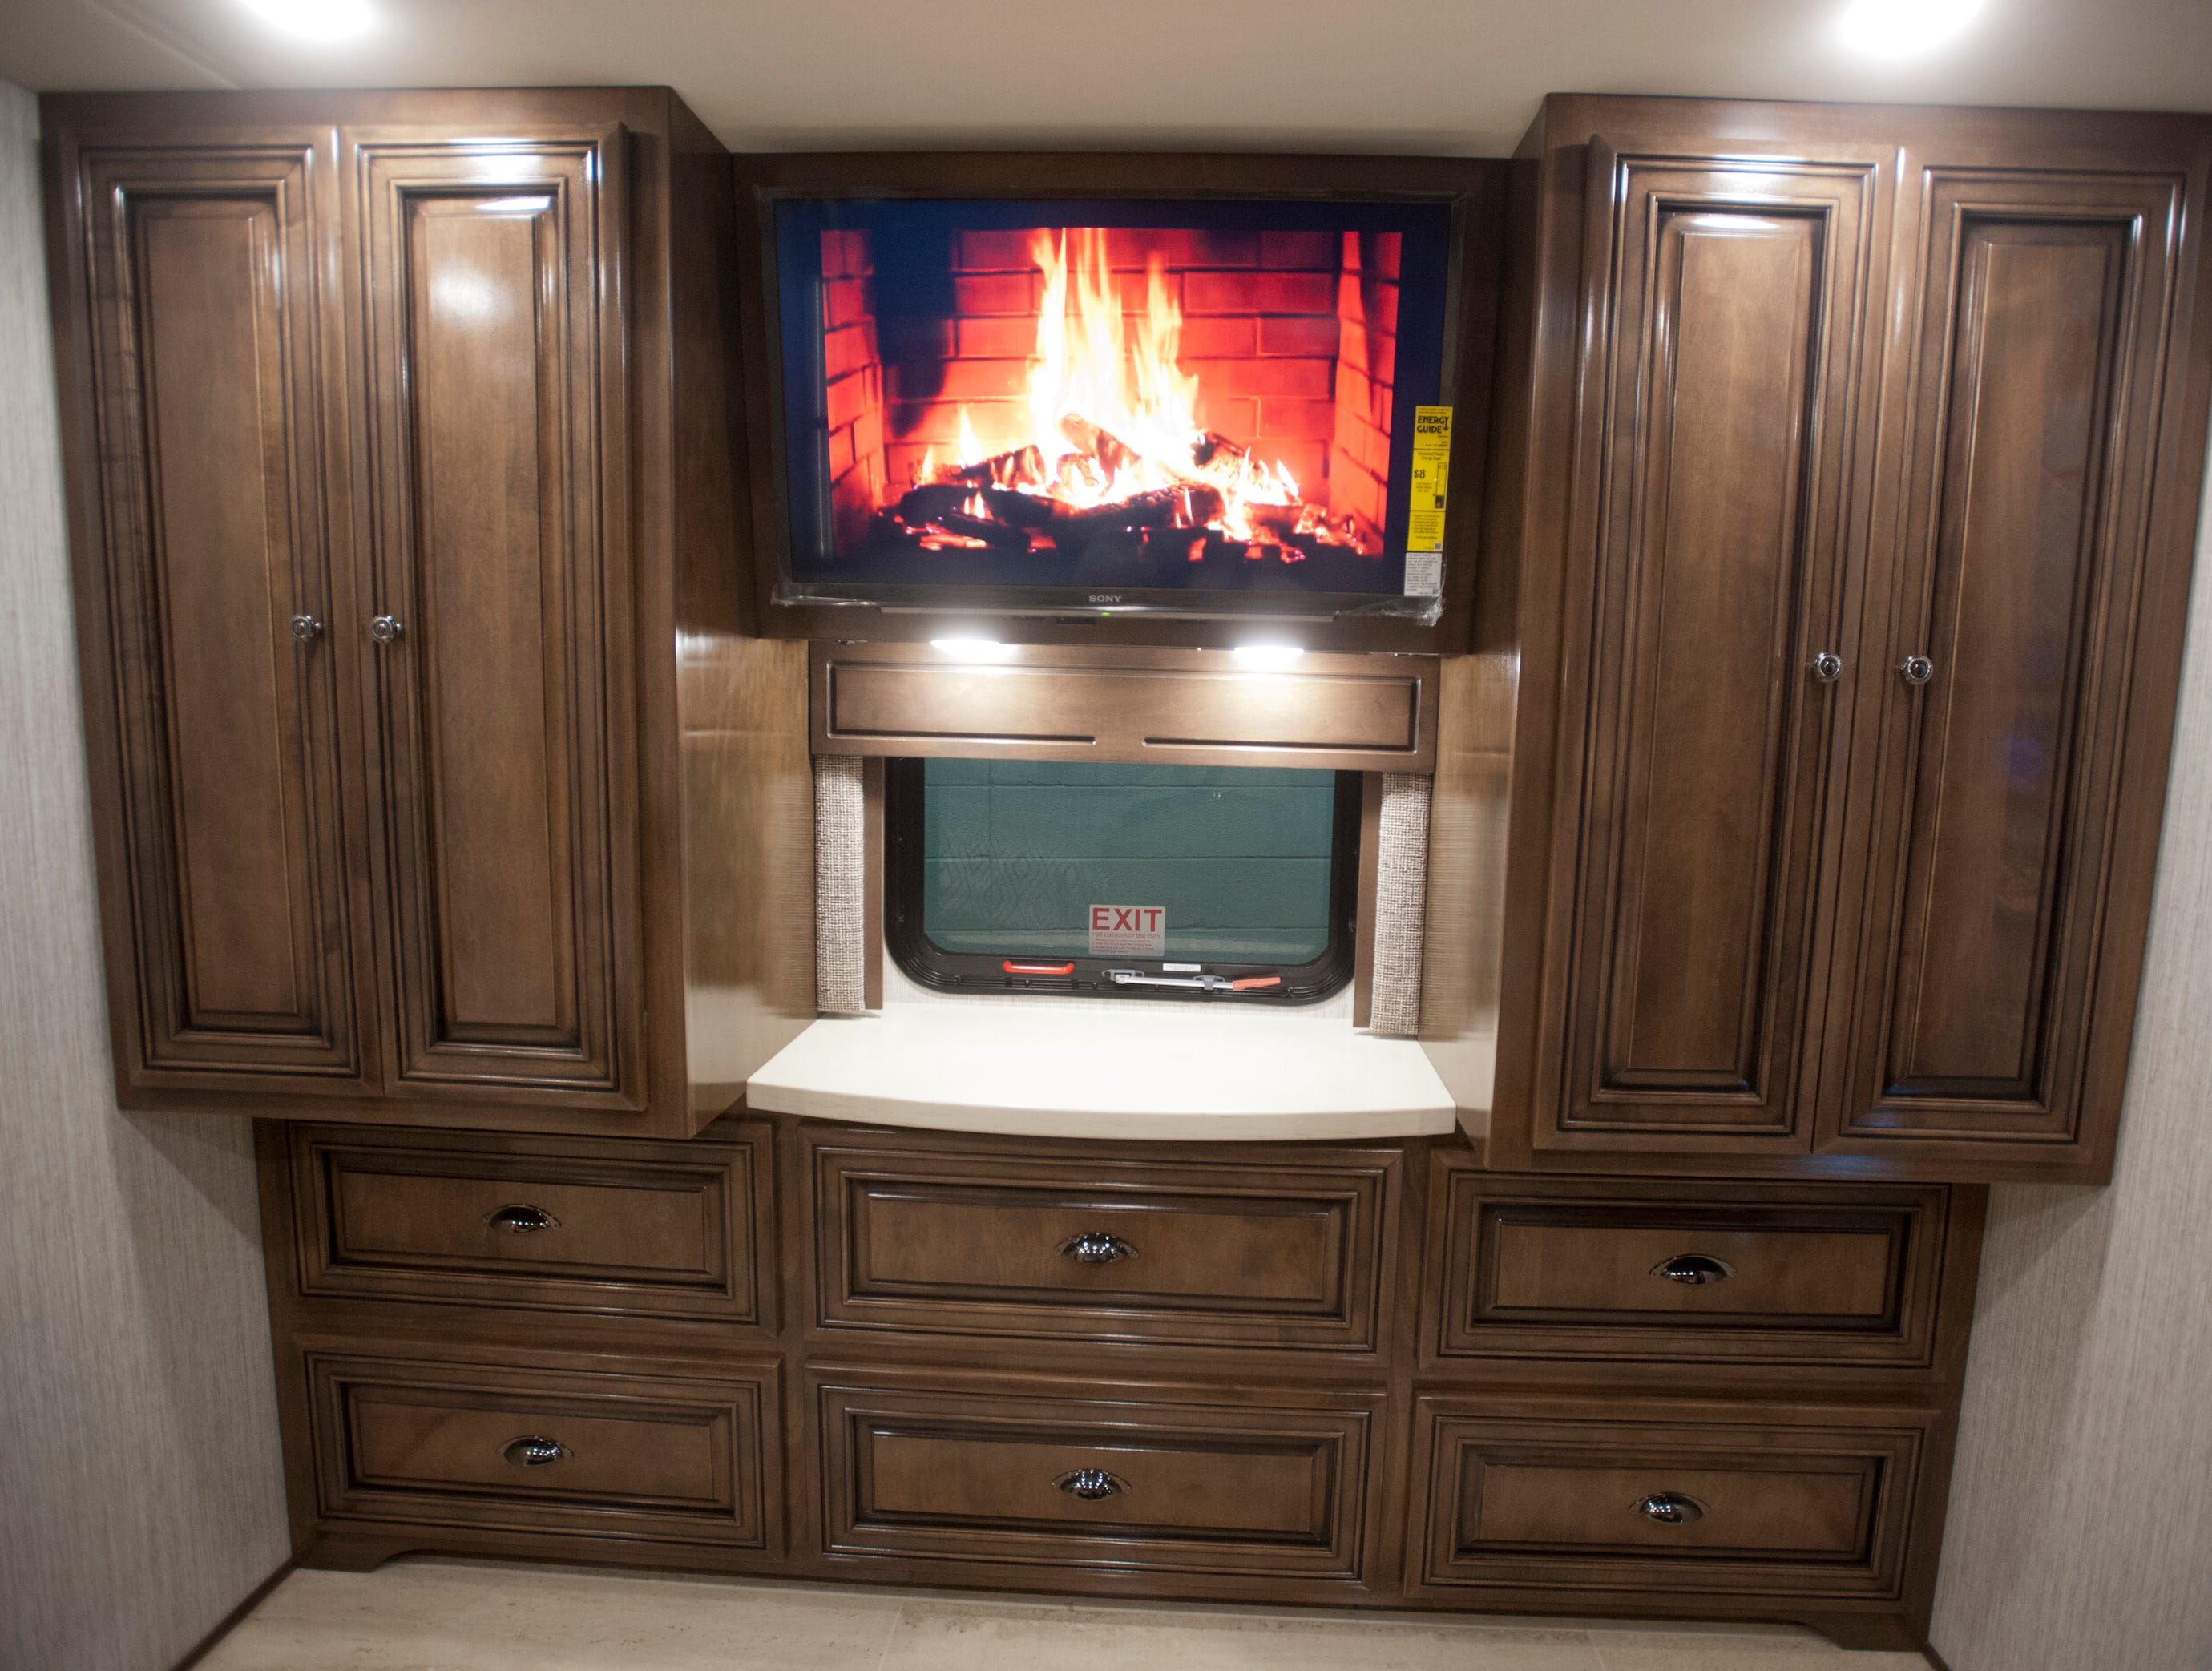 Cabinetry opposite the kingsize bed in the master bedroom includes a built-in television (seen here playing a video of a burning fireplace.)11 December 2018